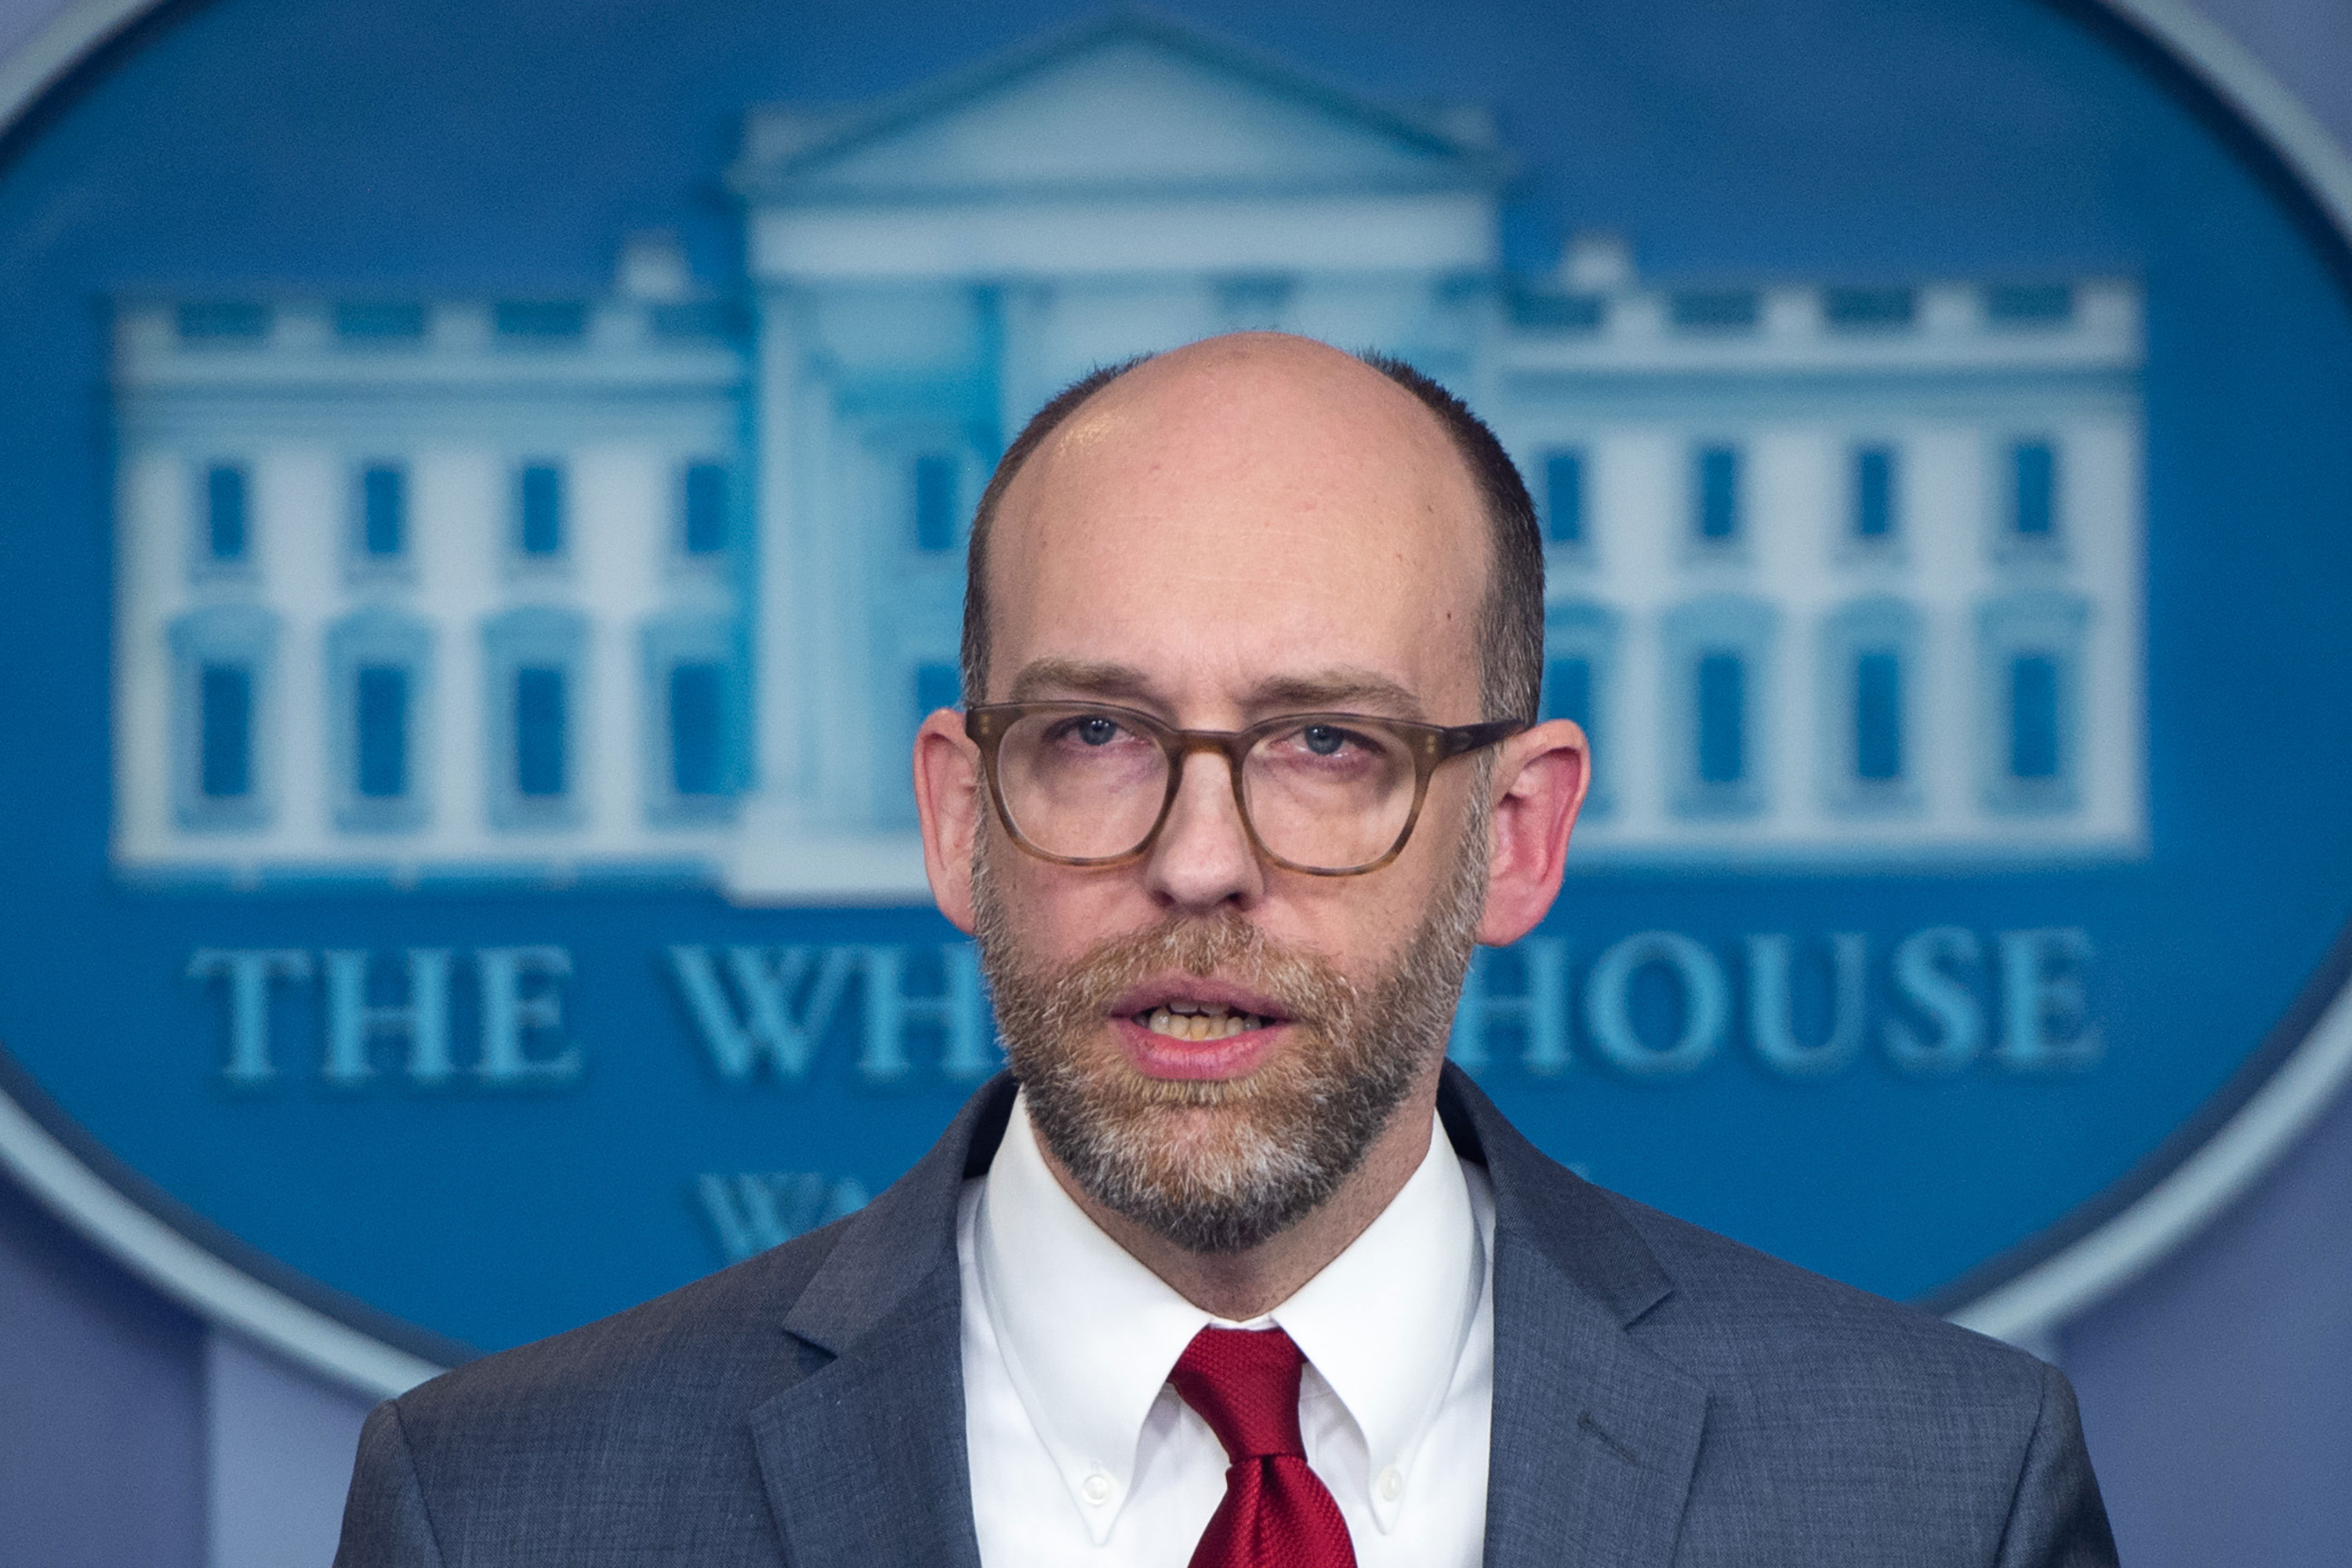 Russell Vought, Acting Director of the Office of Management and Budget, speaks during a press briefing at the White House on March 11, 2019.